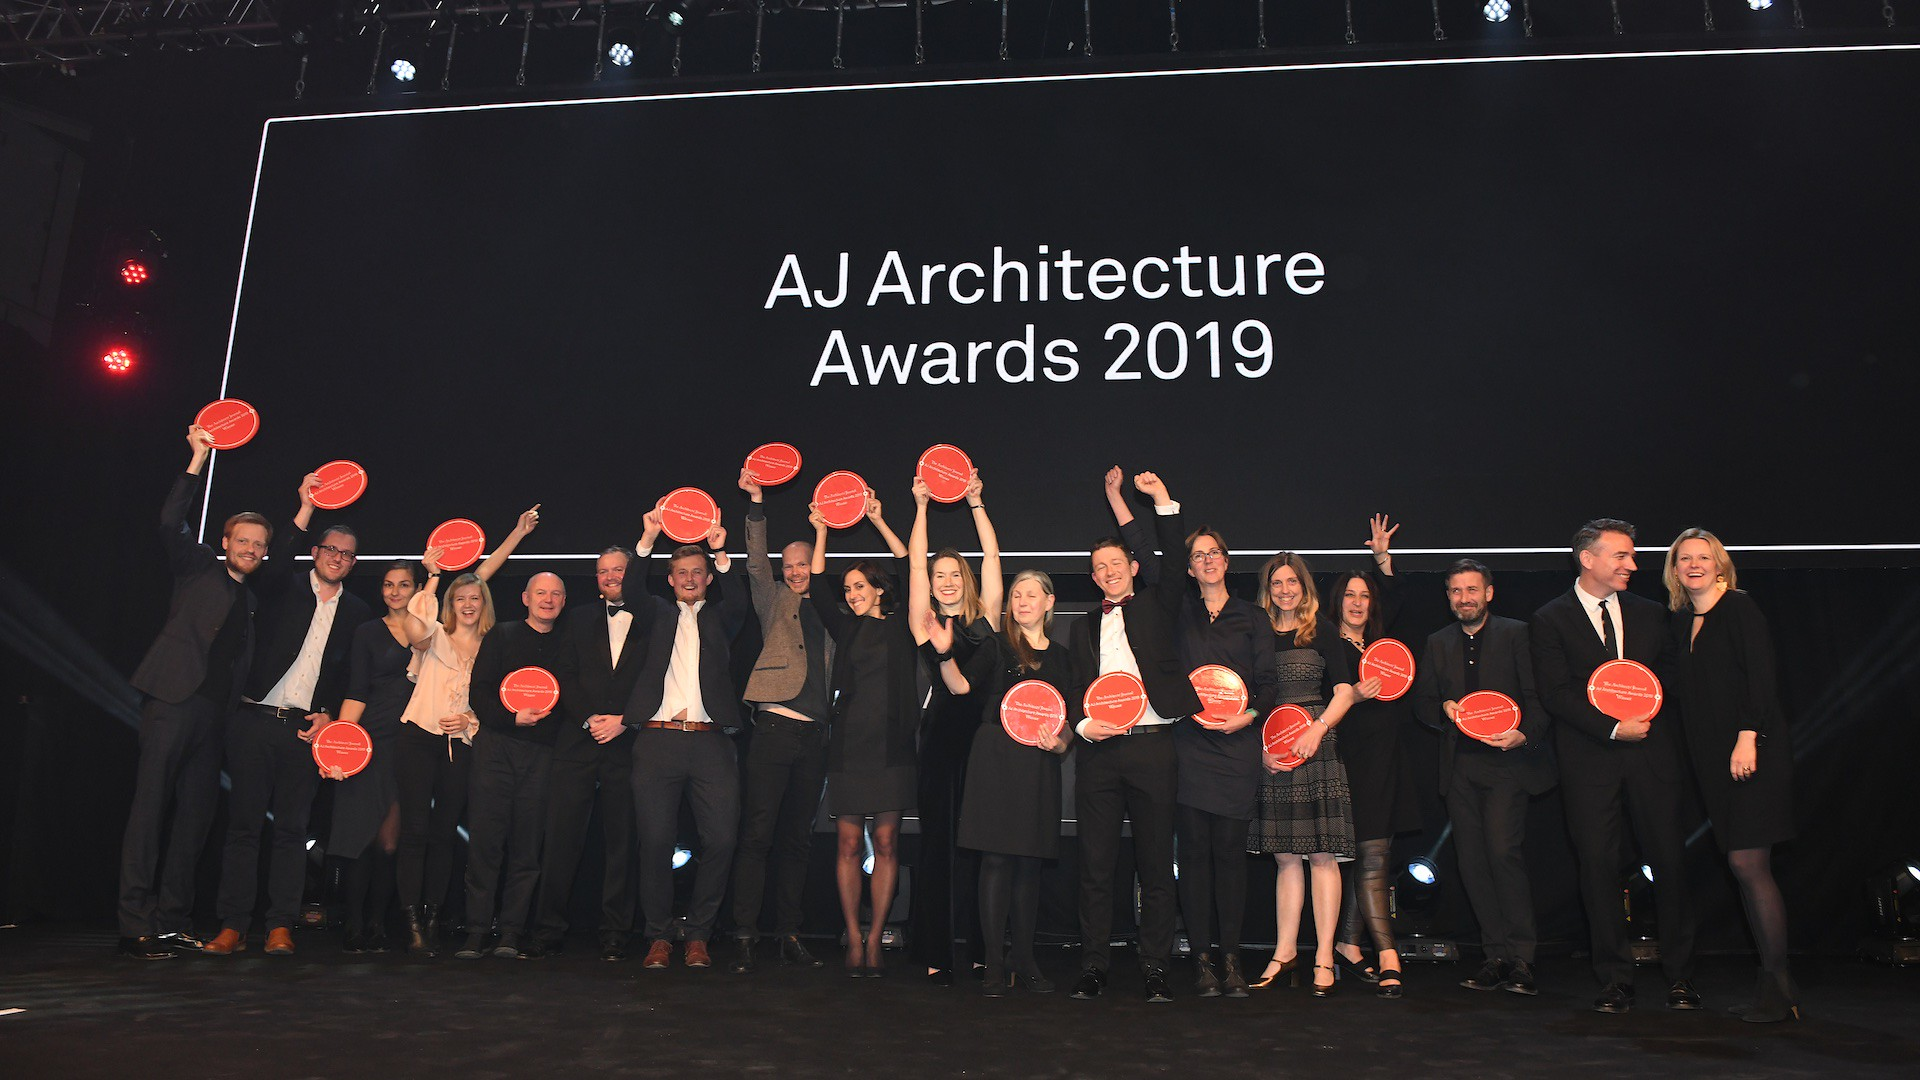 AJ Architecture Awards Chiswick Bridge infrastructure